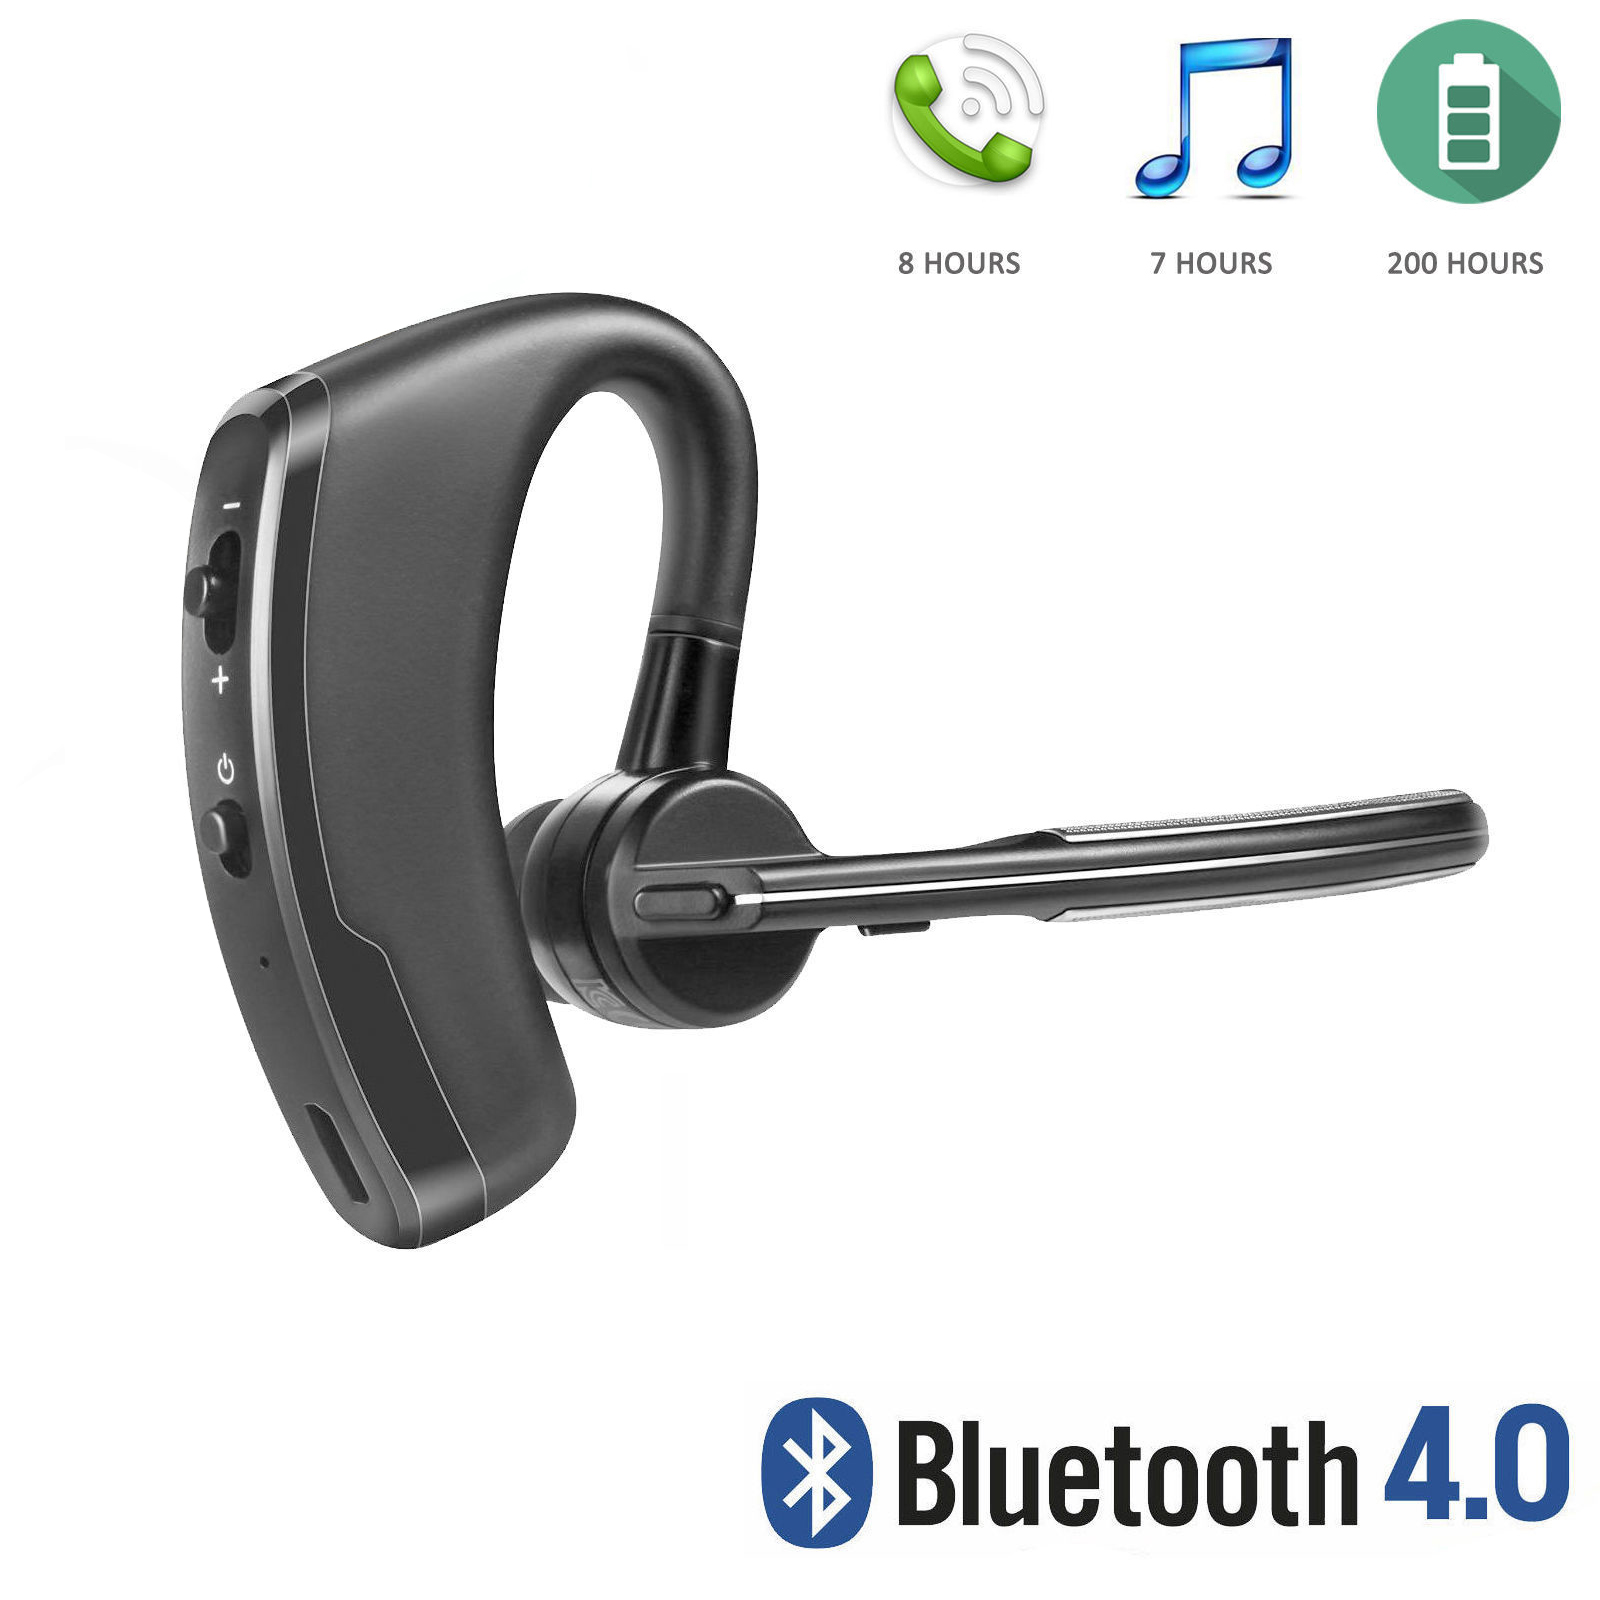 Wireless Bluetooth 4.0 Stereo Surround Music Earphone Handsfree Headphone Earbuds for iPhone Samsung Galaxy LG with MIC Microphone